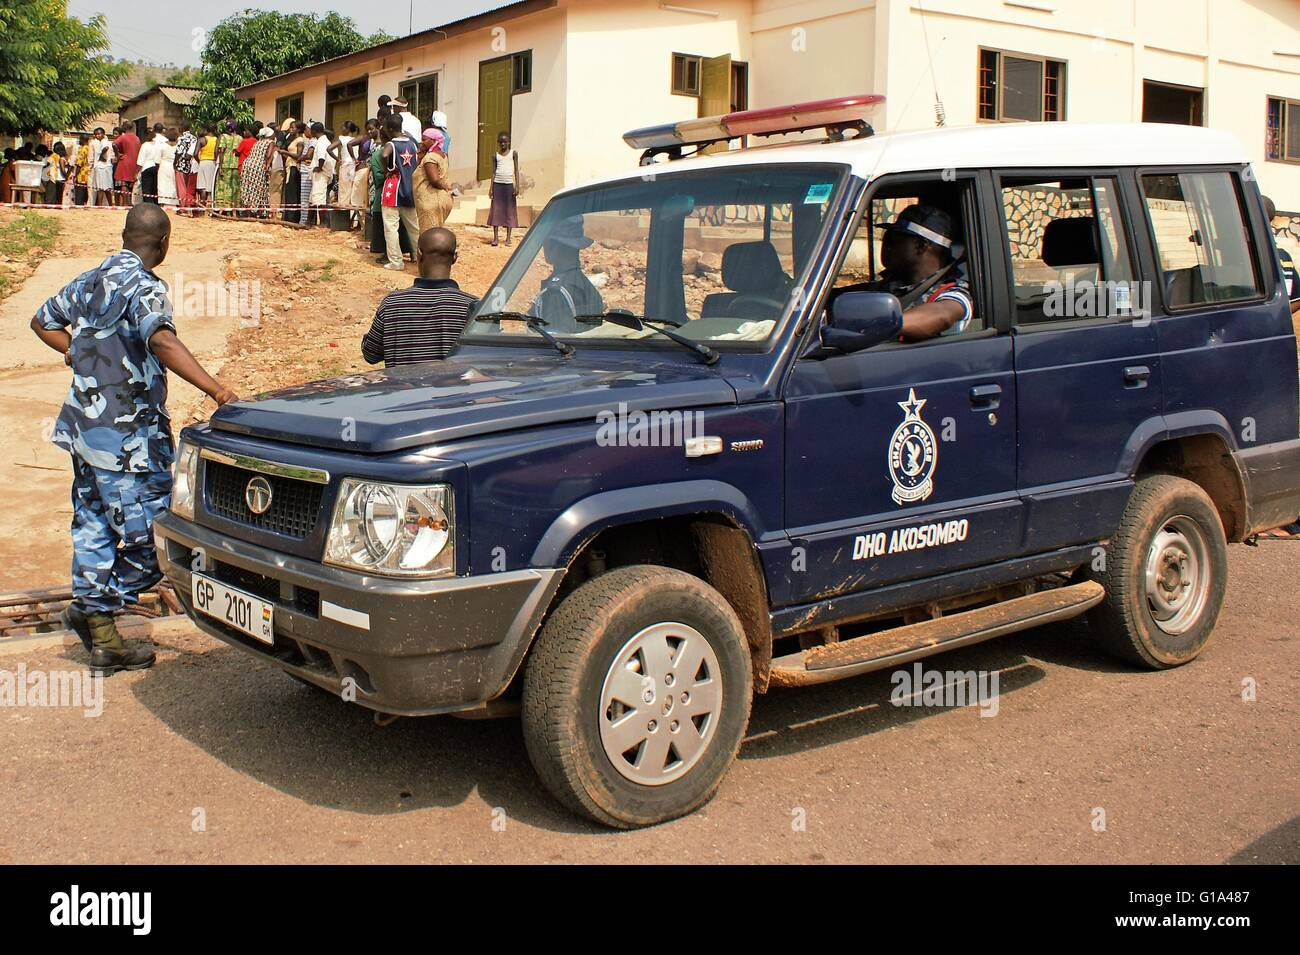 Ghana General Elections, 2008 - Police assuring a peaceful and fair Ghana election in Akosombo, near Accra - Stock Image